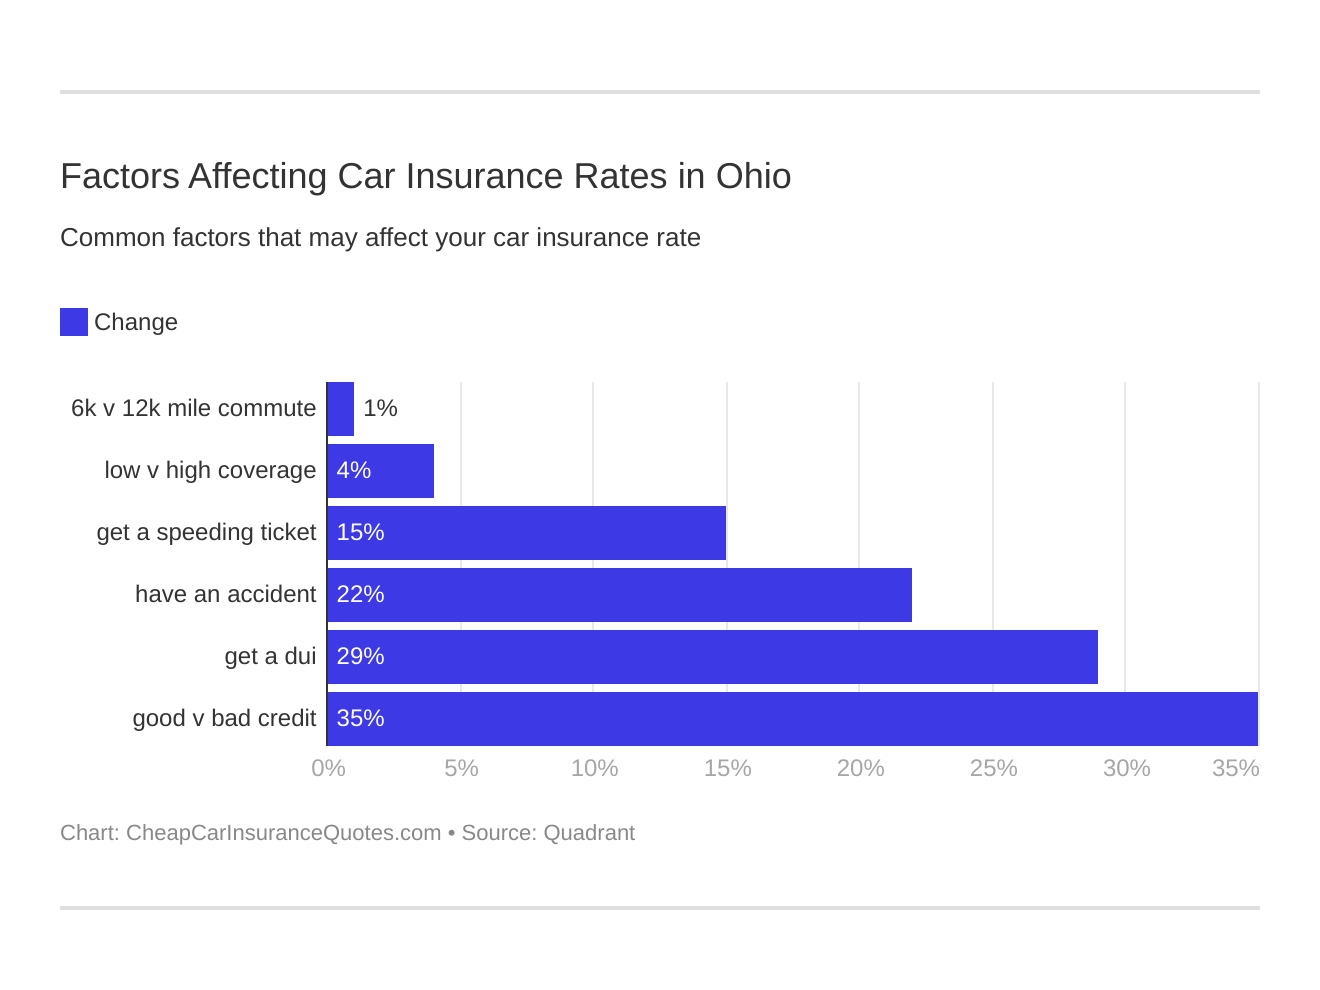 Factors Affecting Car Insurance Rates in Ohio